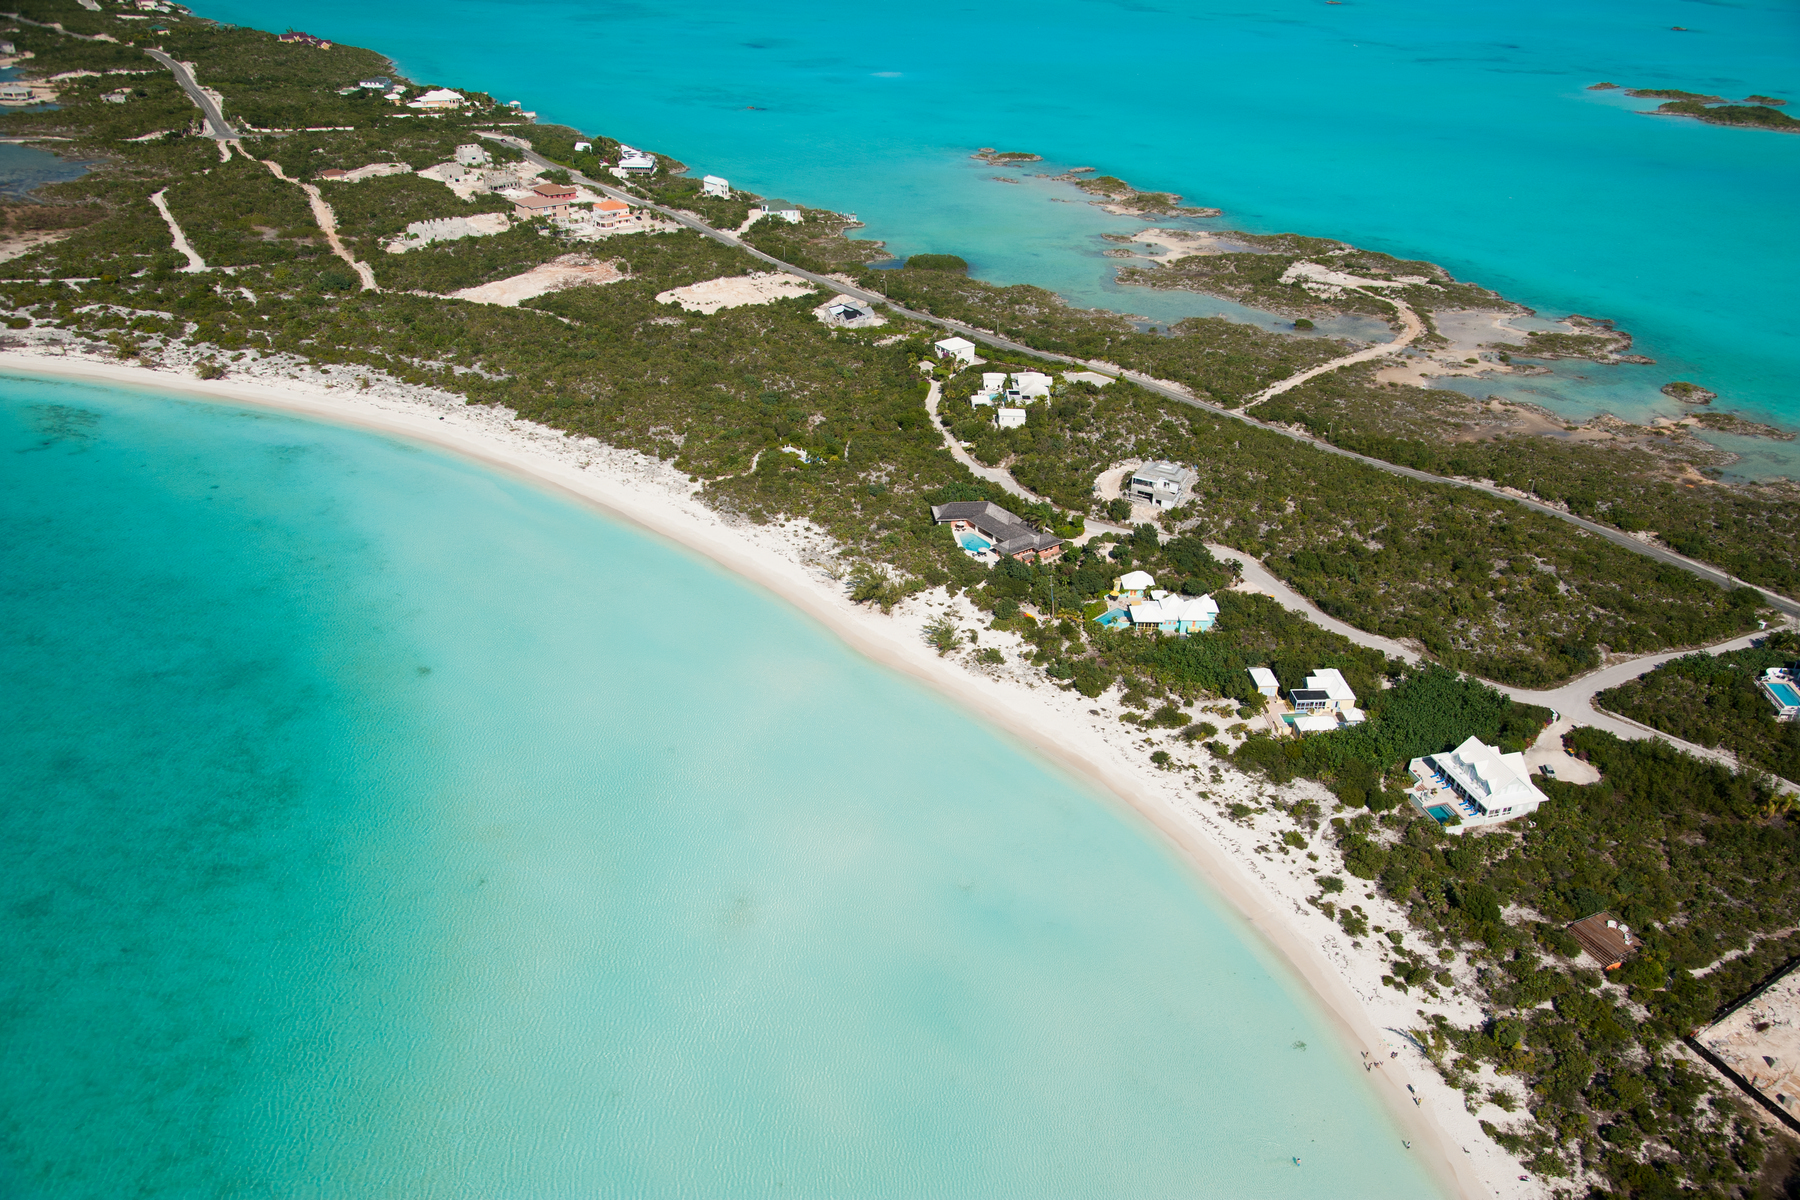 Land for Sale at Oceanview Lot on Sunset Bay Chalk Sound, Providenciales, Turks And Caicos Islands